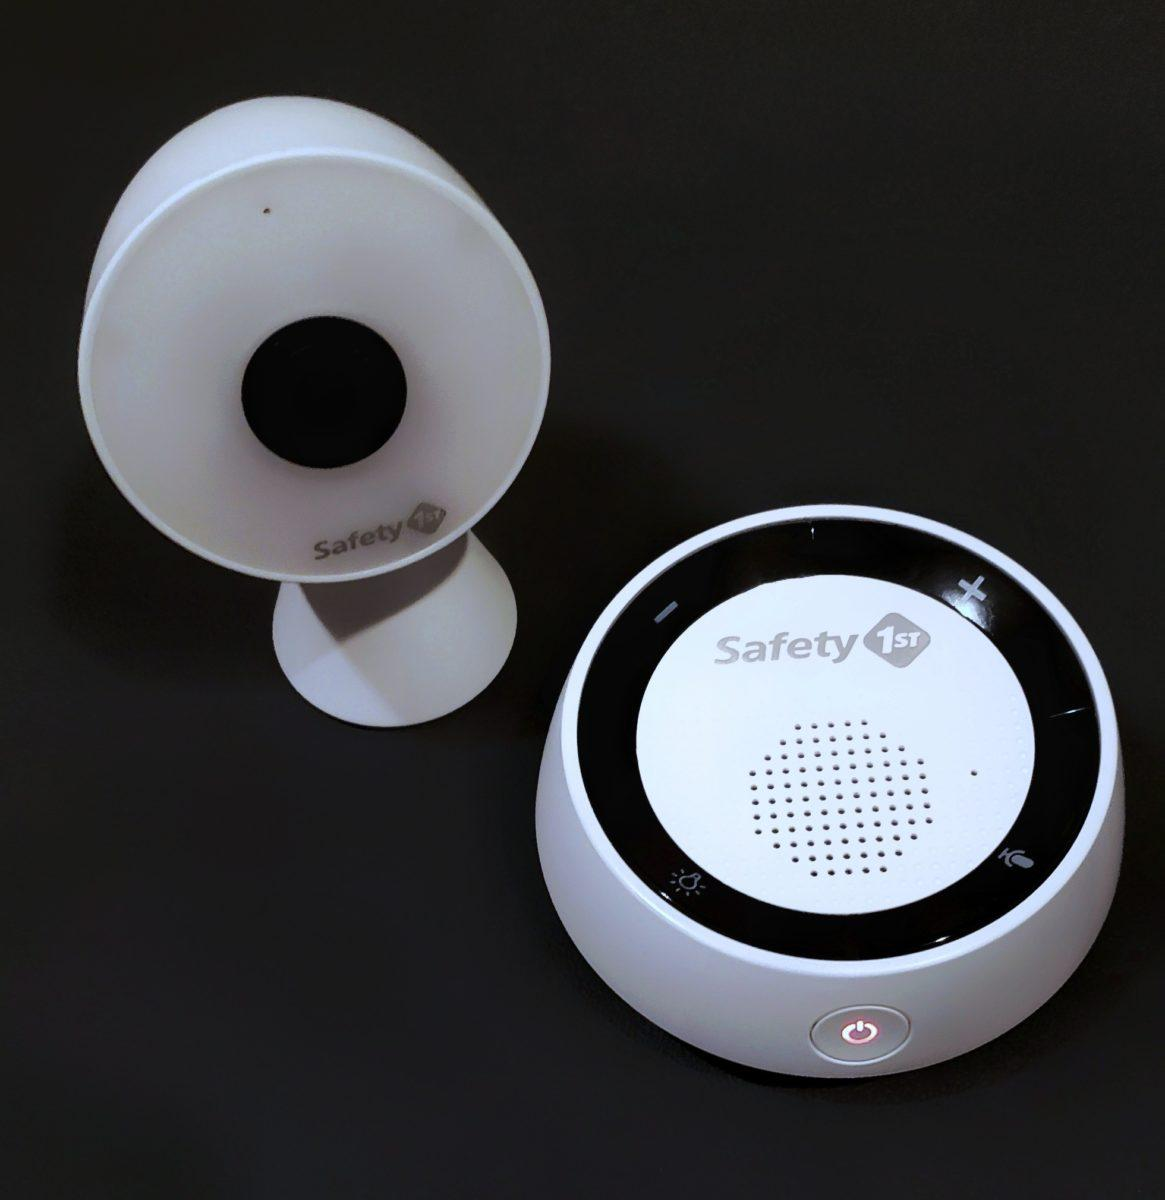 Safety 1st HD WiFi Baby Monitor Review 3